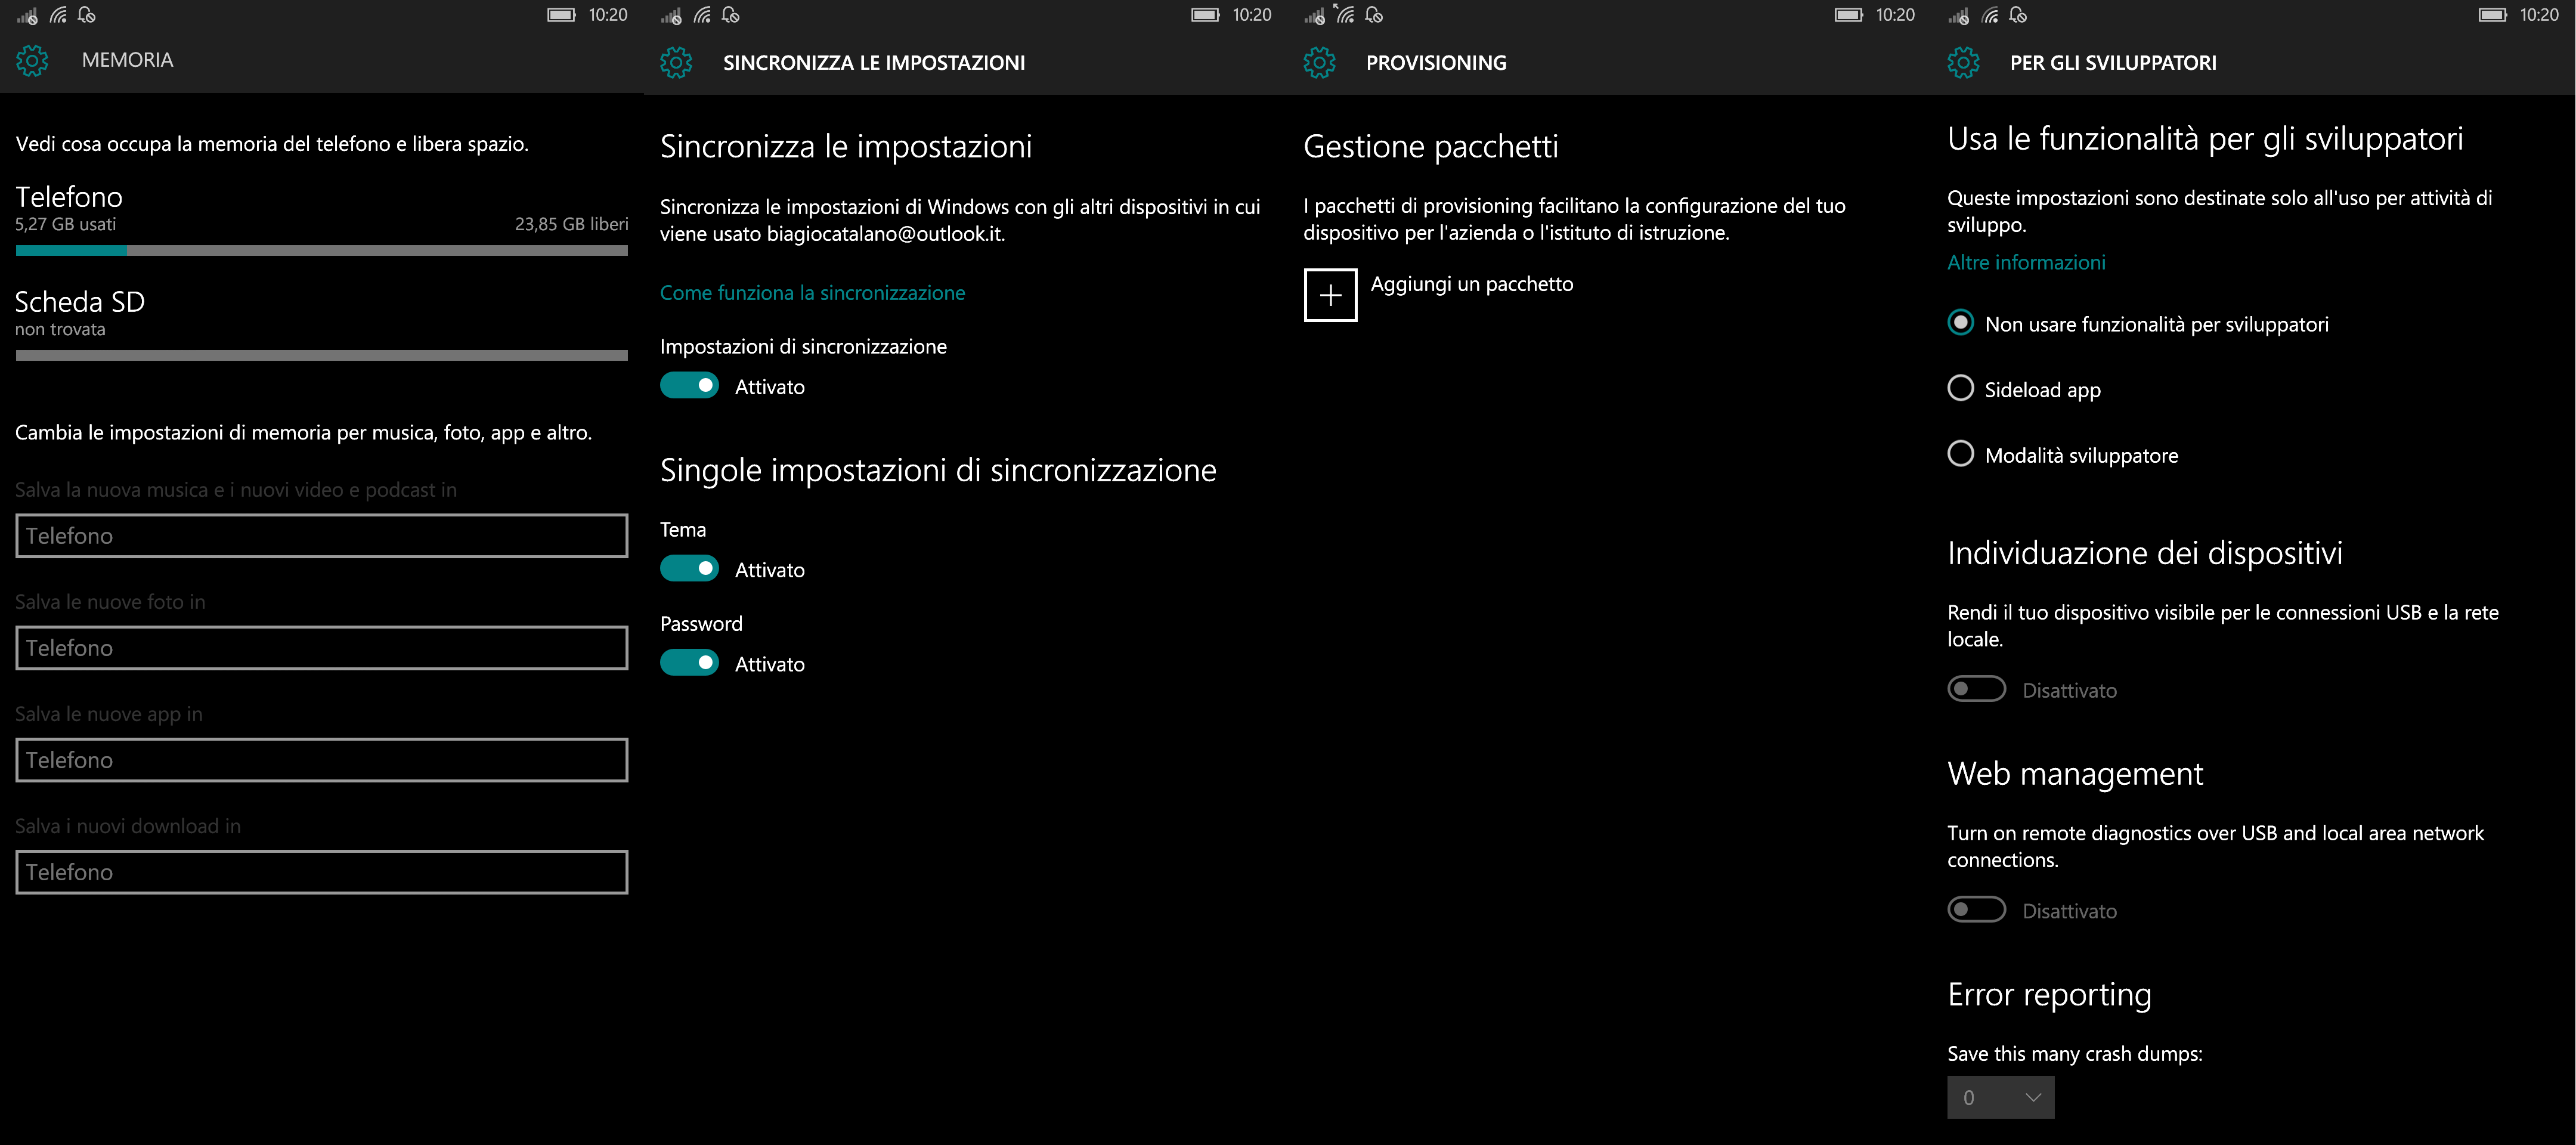 emulatore android per windows 10 mobile